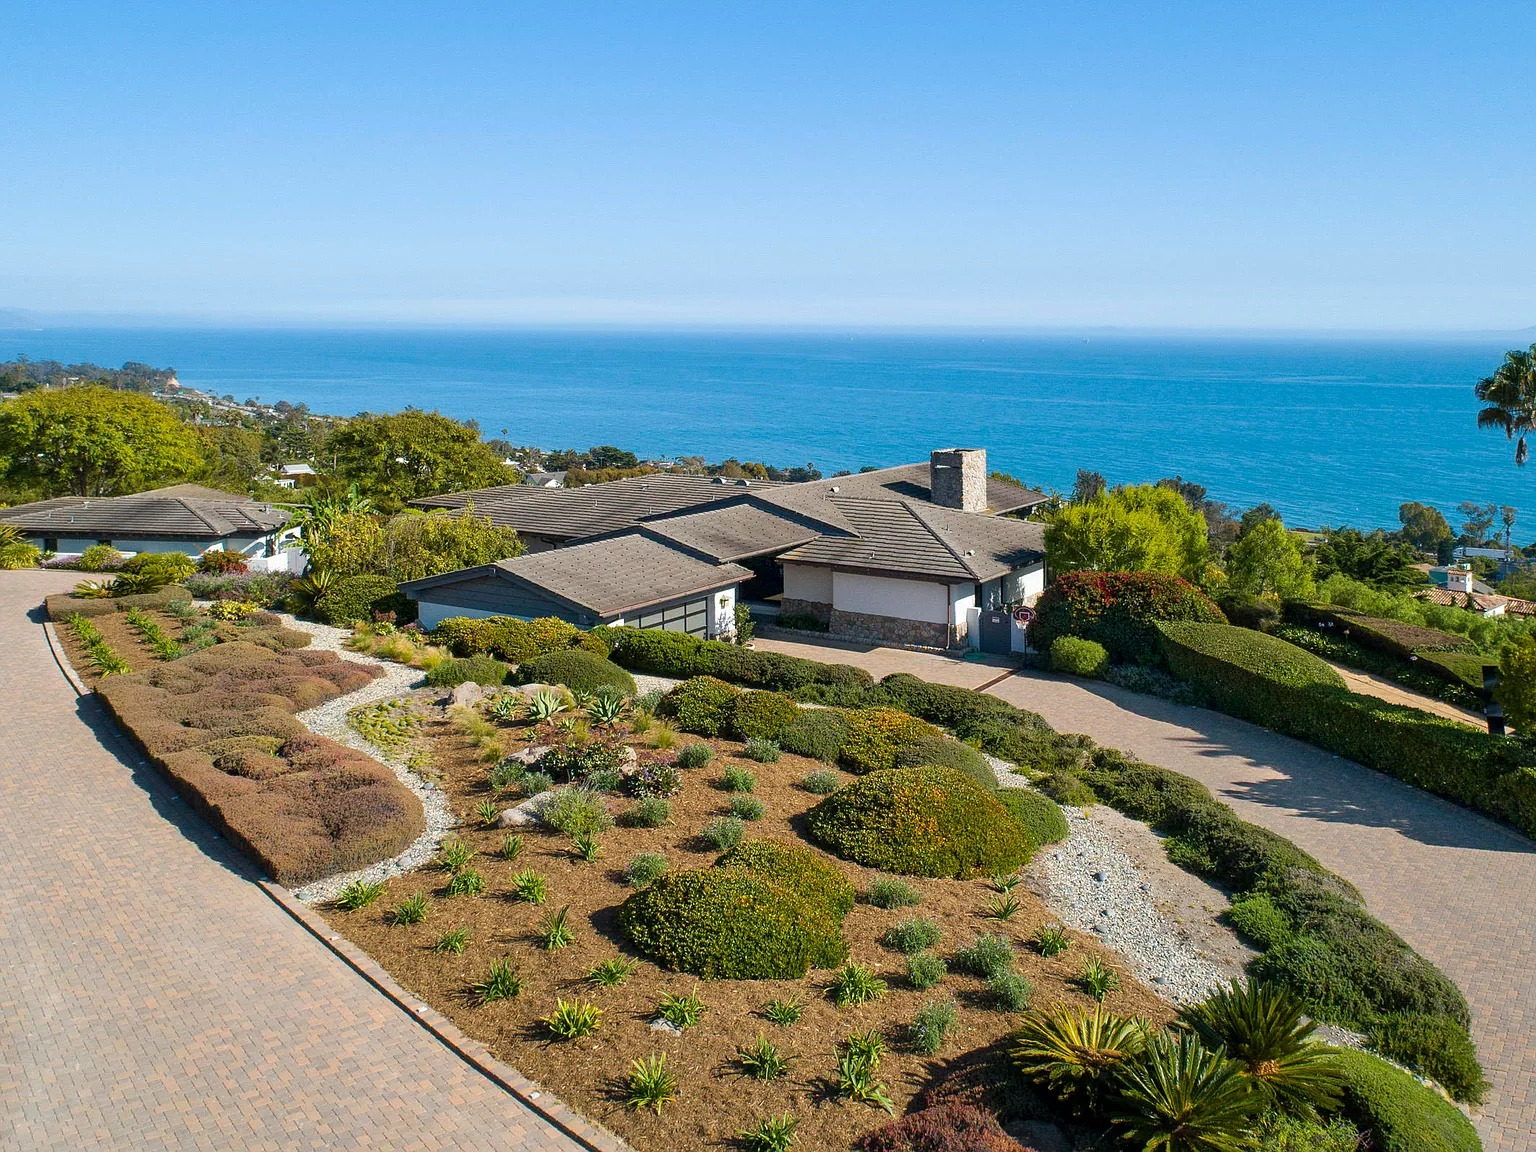 2160 Ortega Ranch Rd, Santa Barbara, CA 93108 - $5,795,000 home for sale, house images, photos and pics gallery